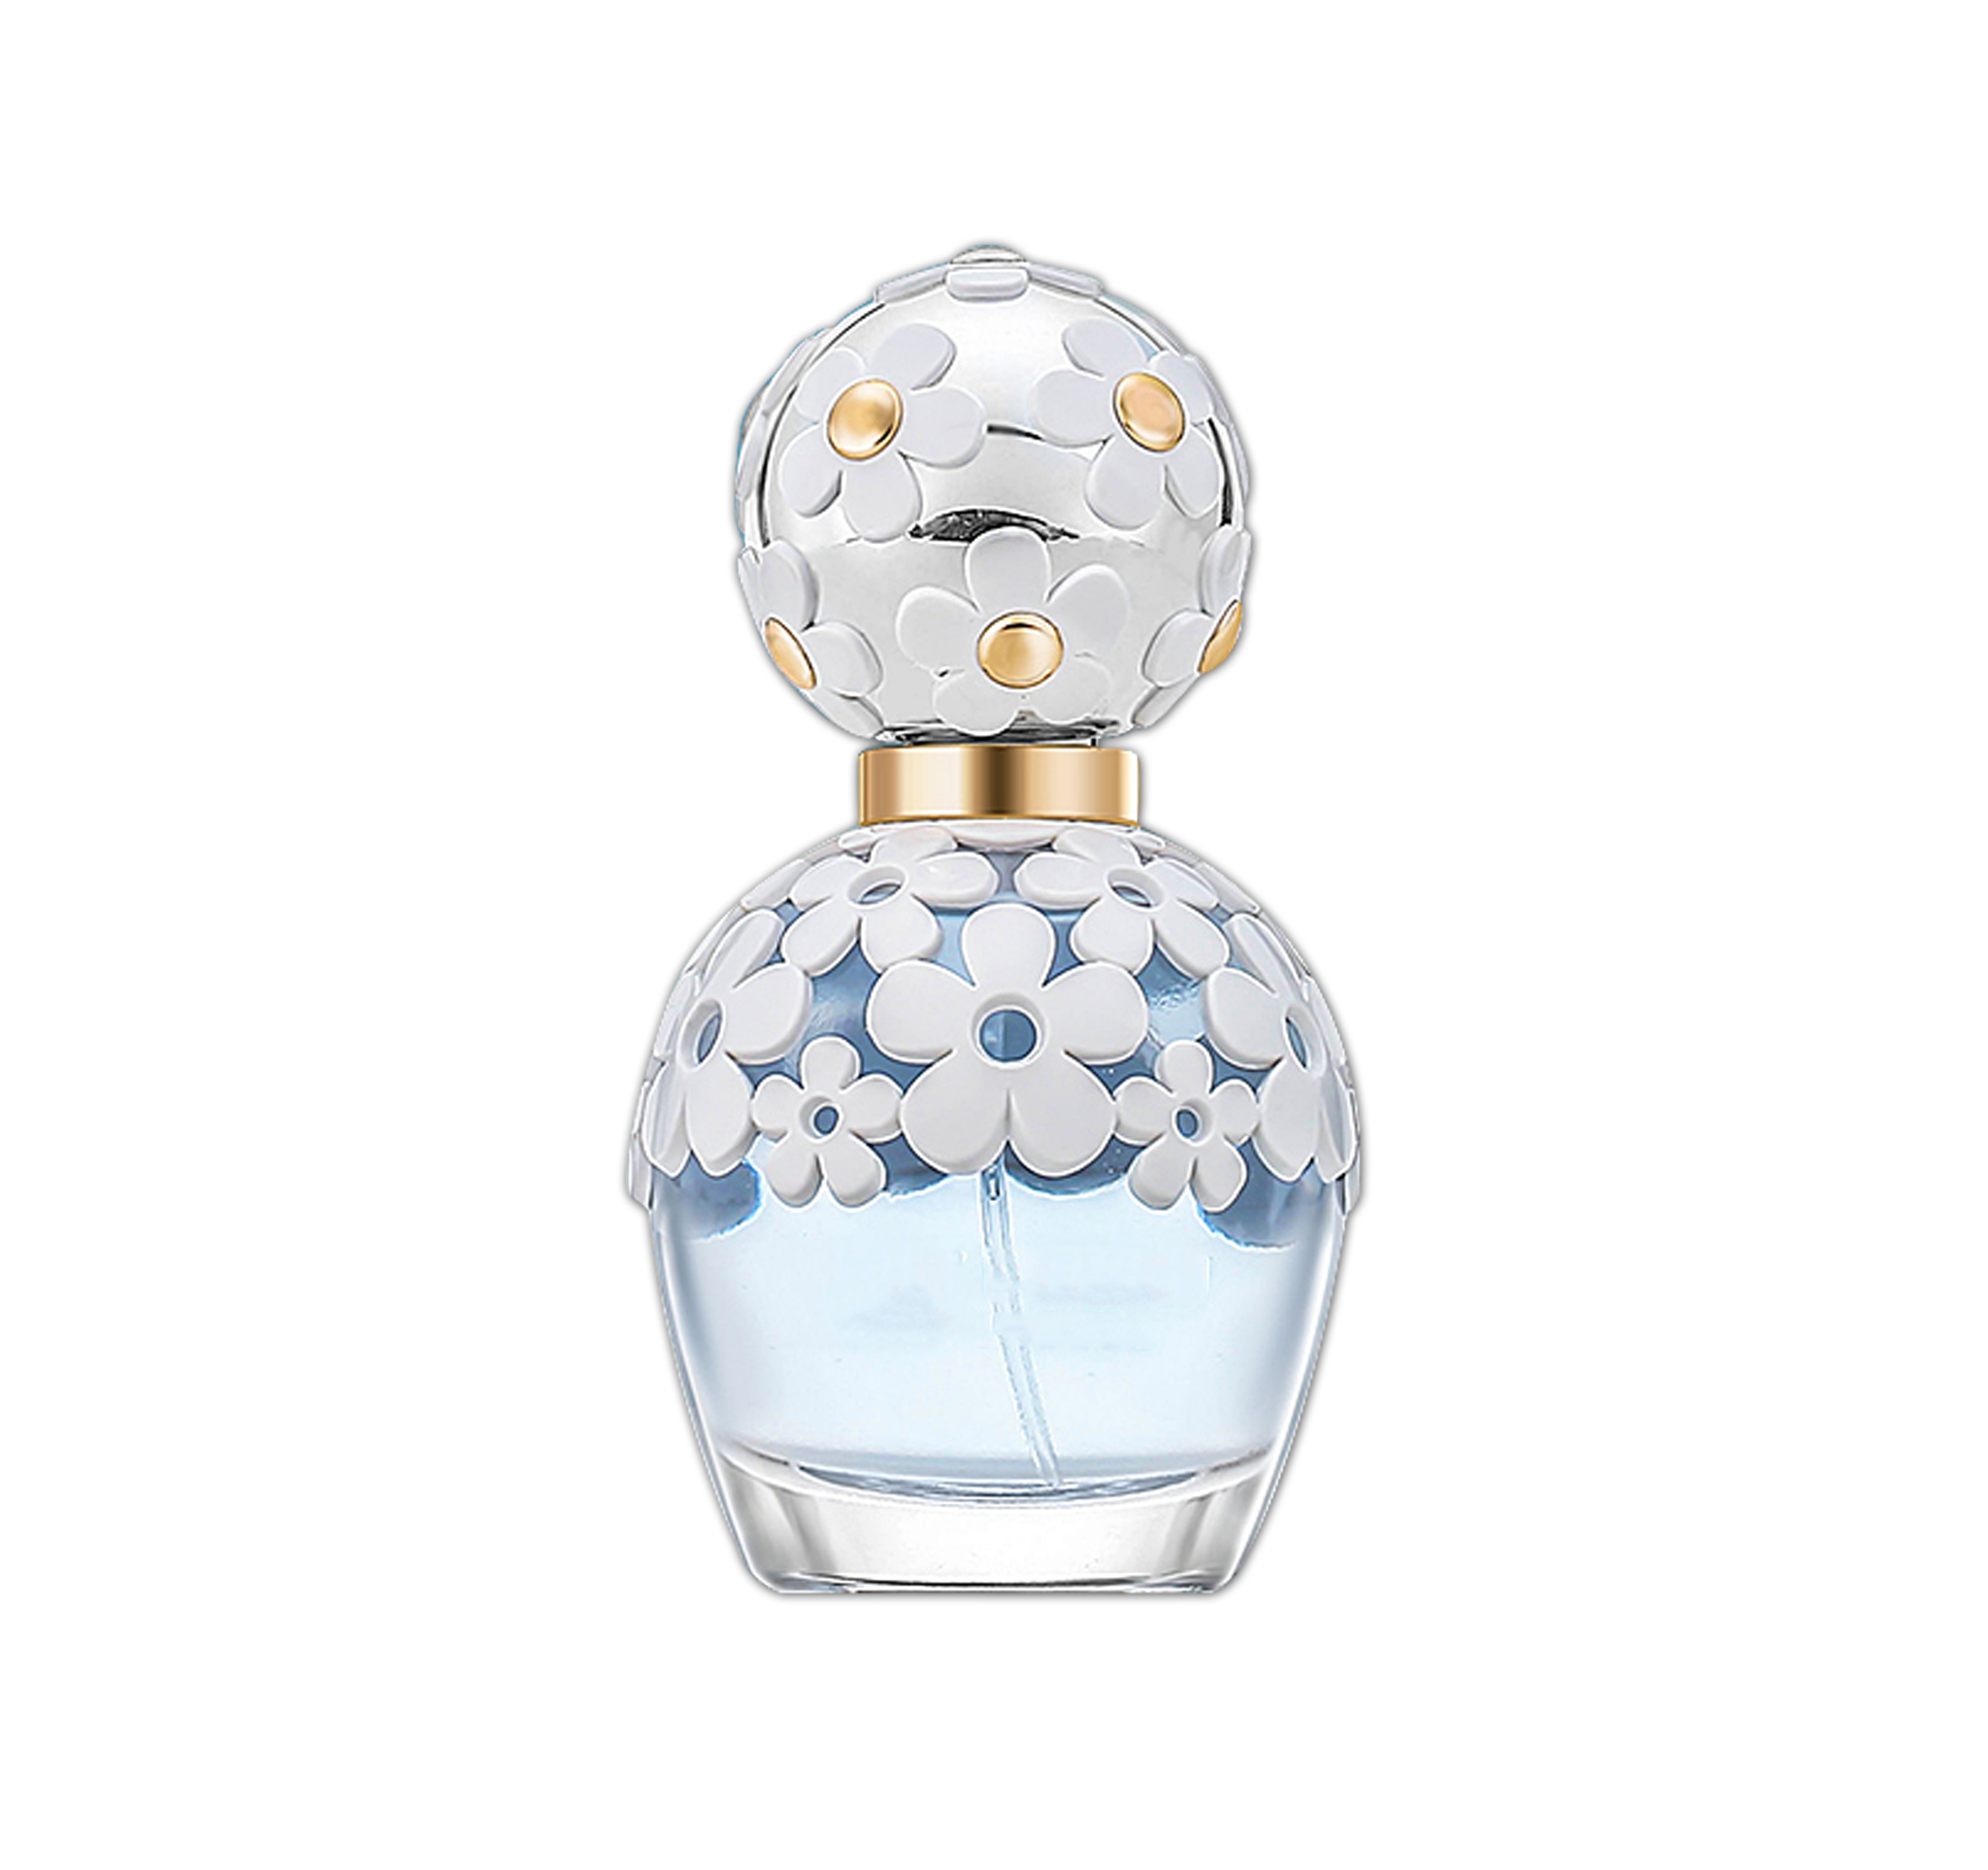 OEM Custom Logo Make Your Own Brand Beauty And Personal Care Spray Fragrance Parfum Collection Smart Perfume Women With No Label